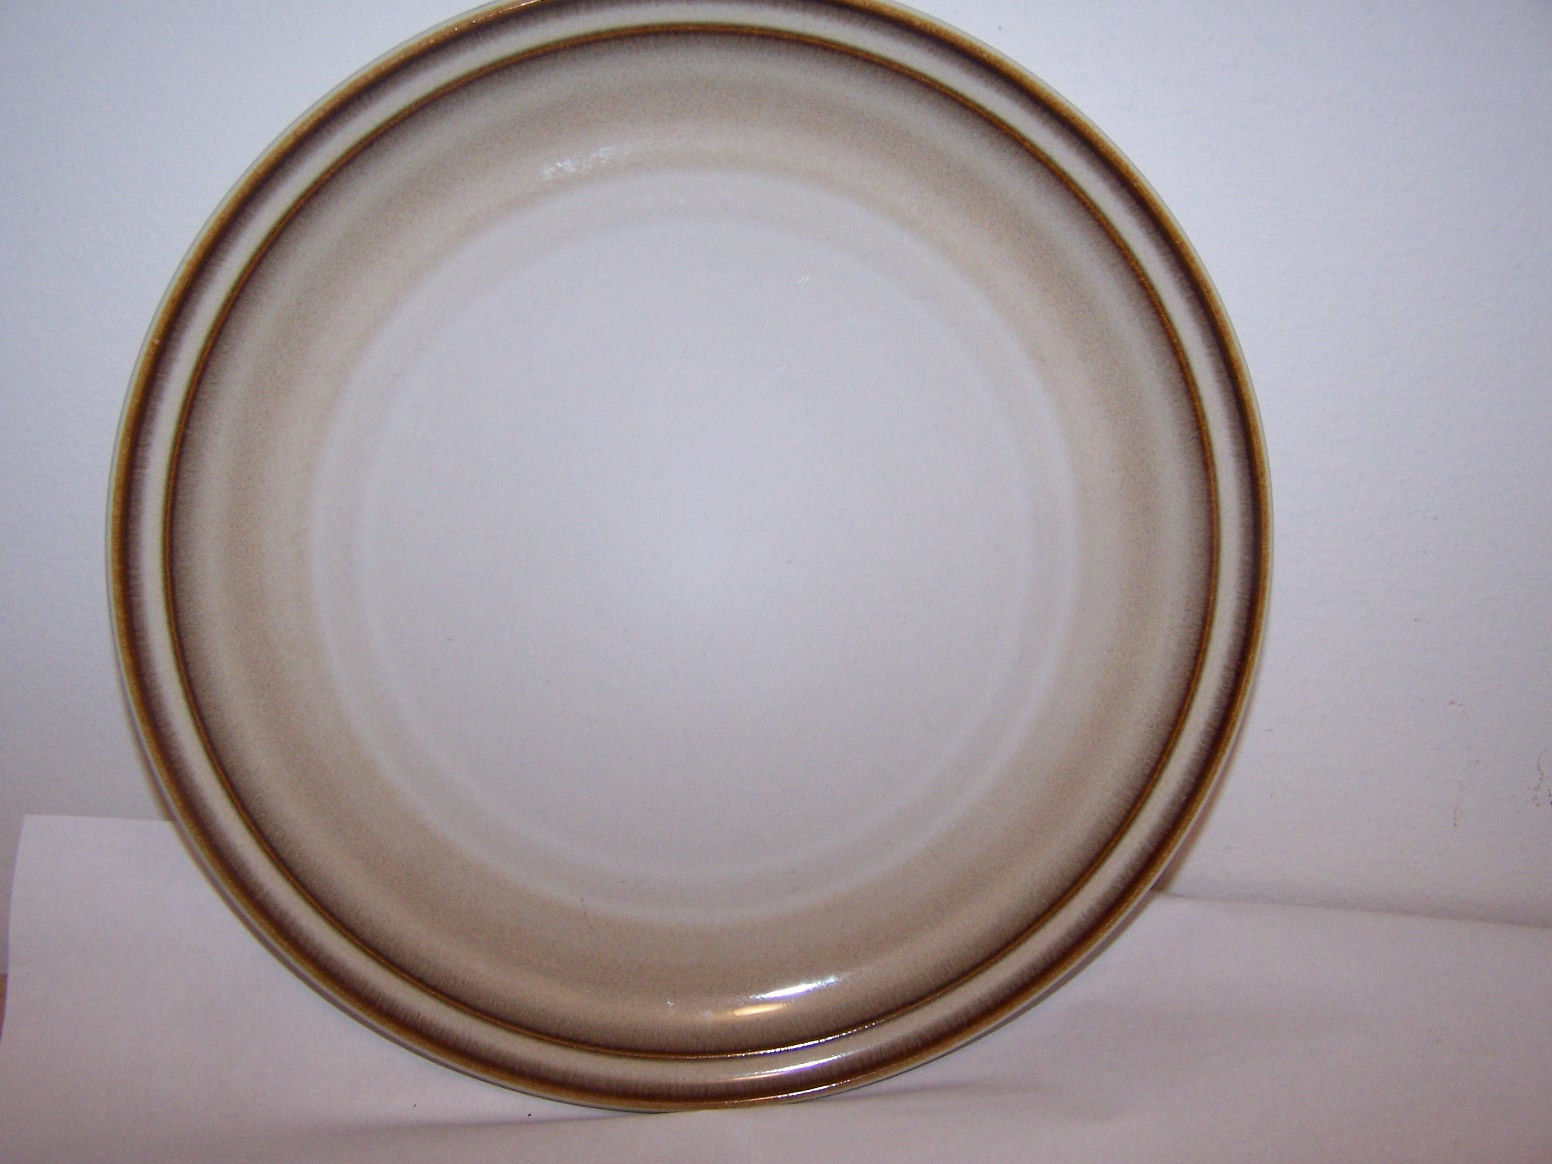 Noritake Dinner Plate Stoneware Fanfare 8621 Japan Dinnerware Dishes Tan Brown - Stoneware